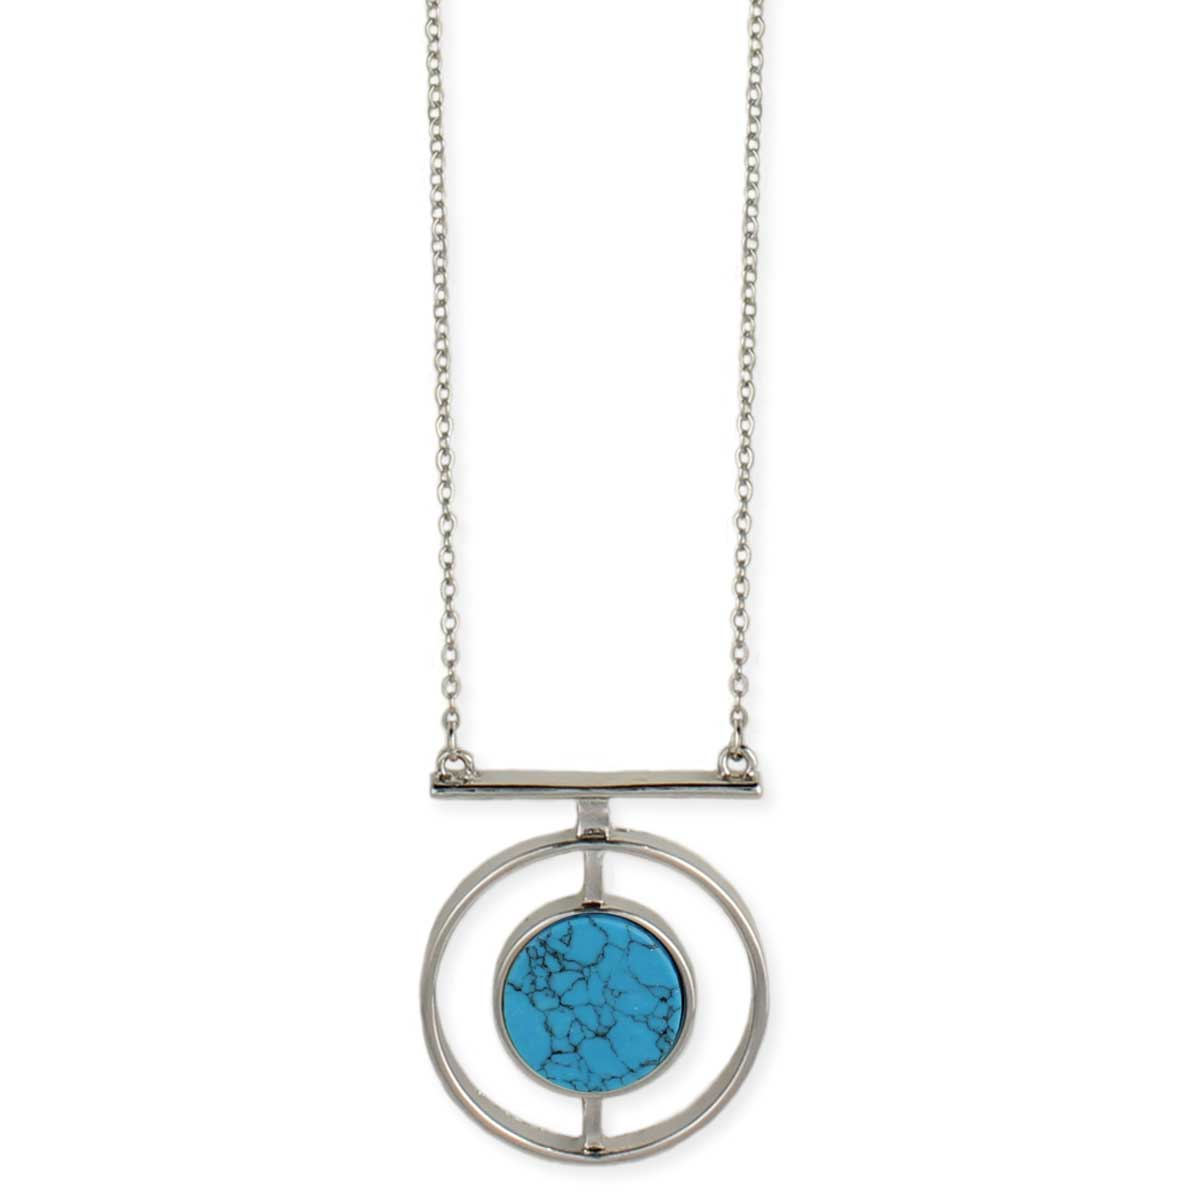 Turquoise & Silver Round Pendant Necklace